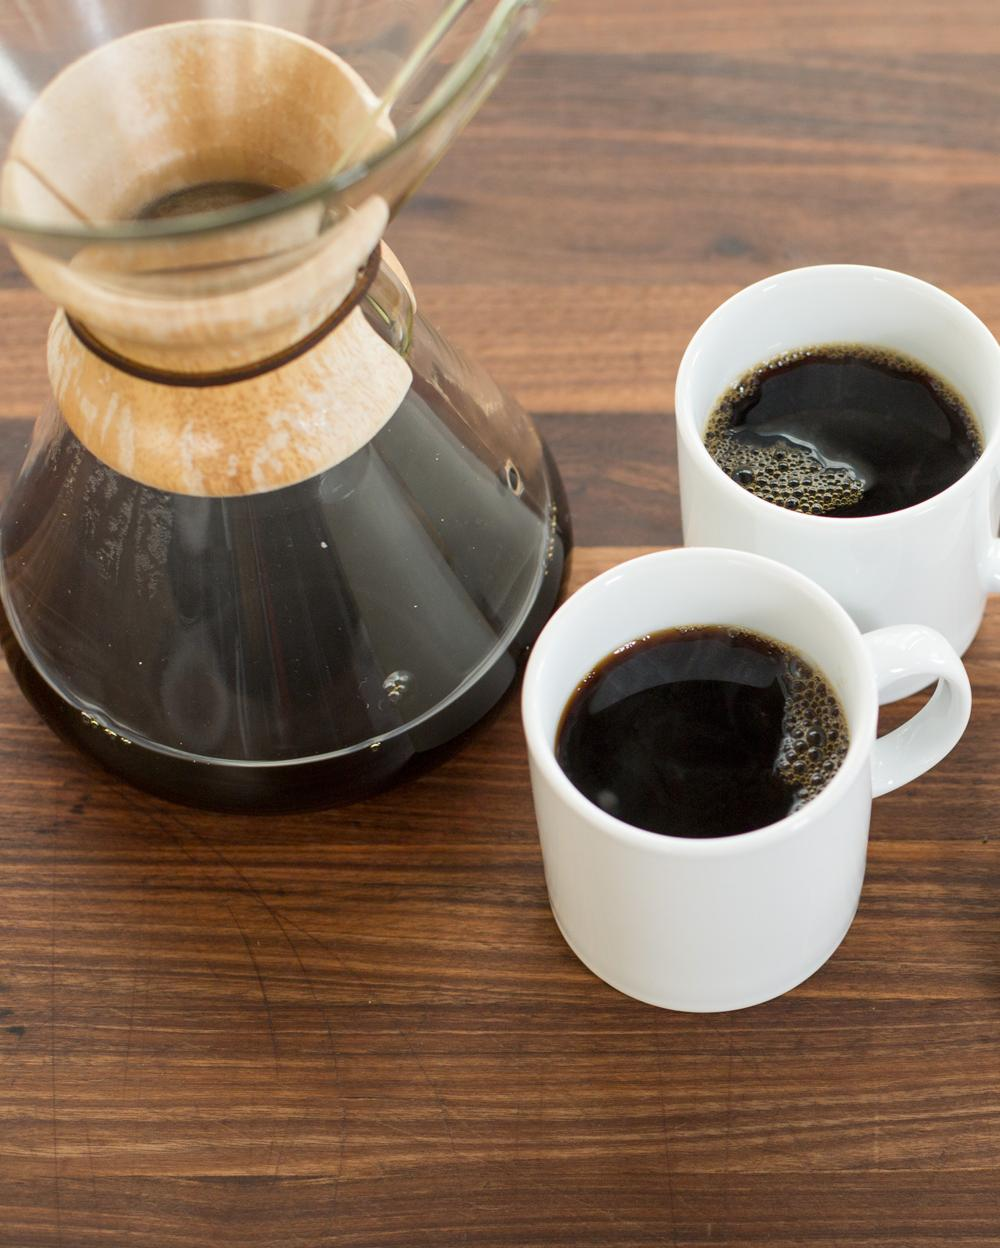 two cups of black coffee and a Chemex